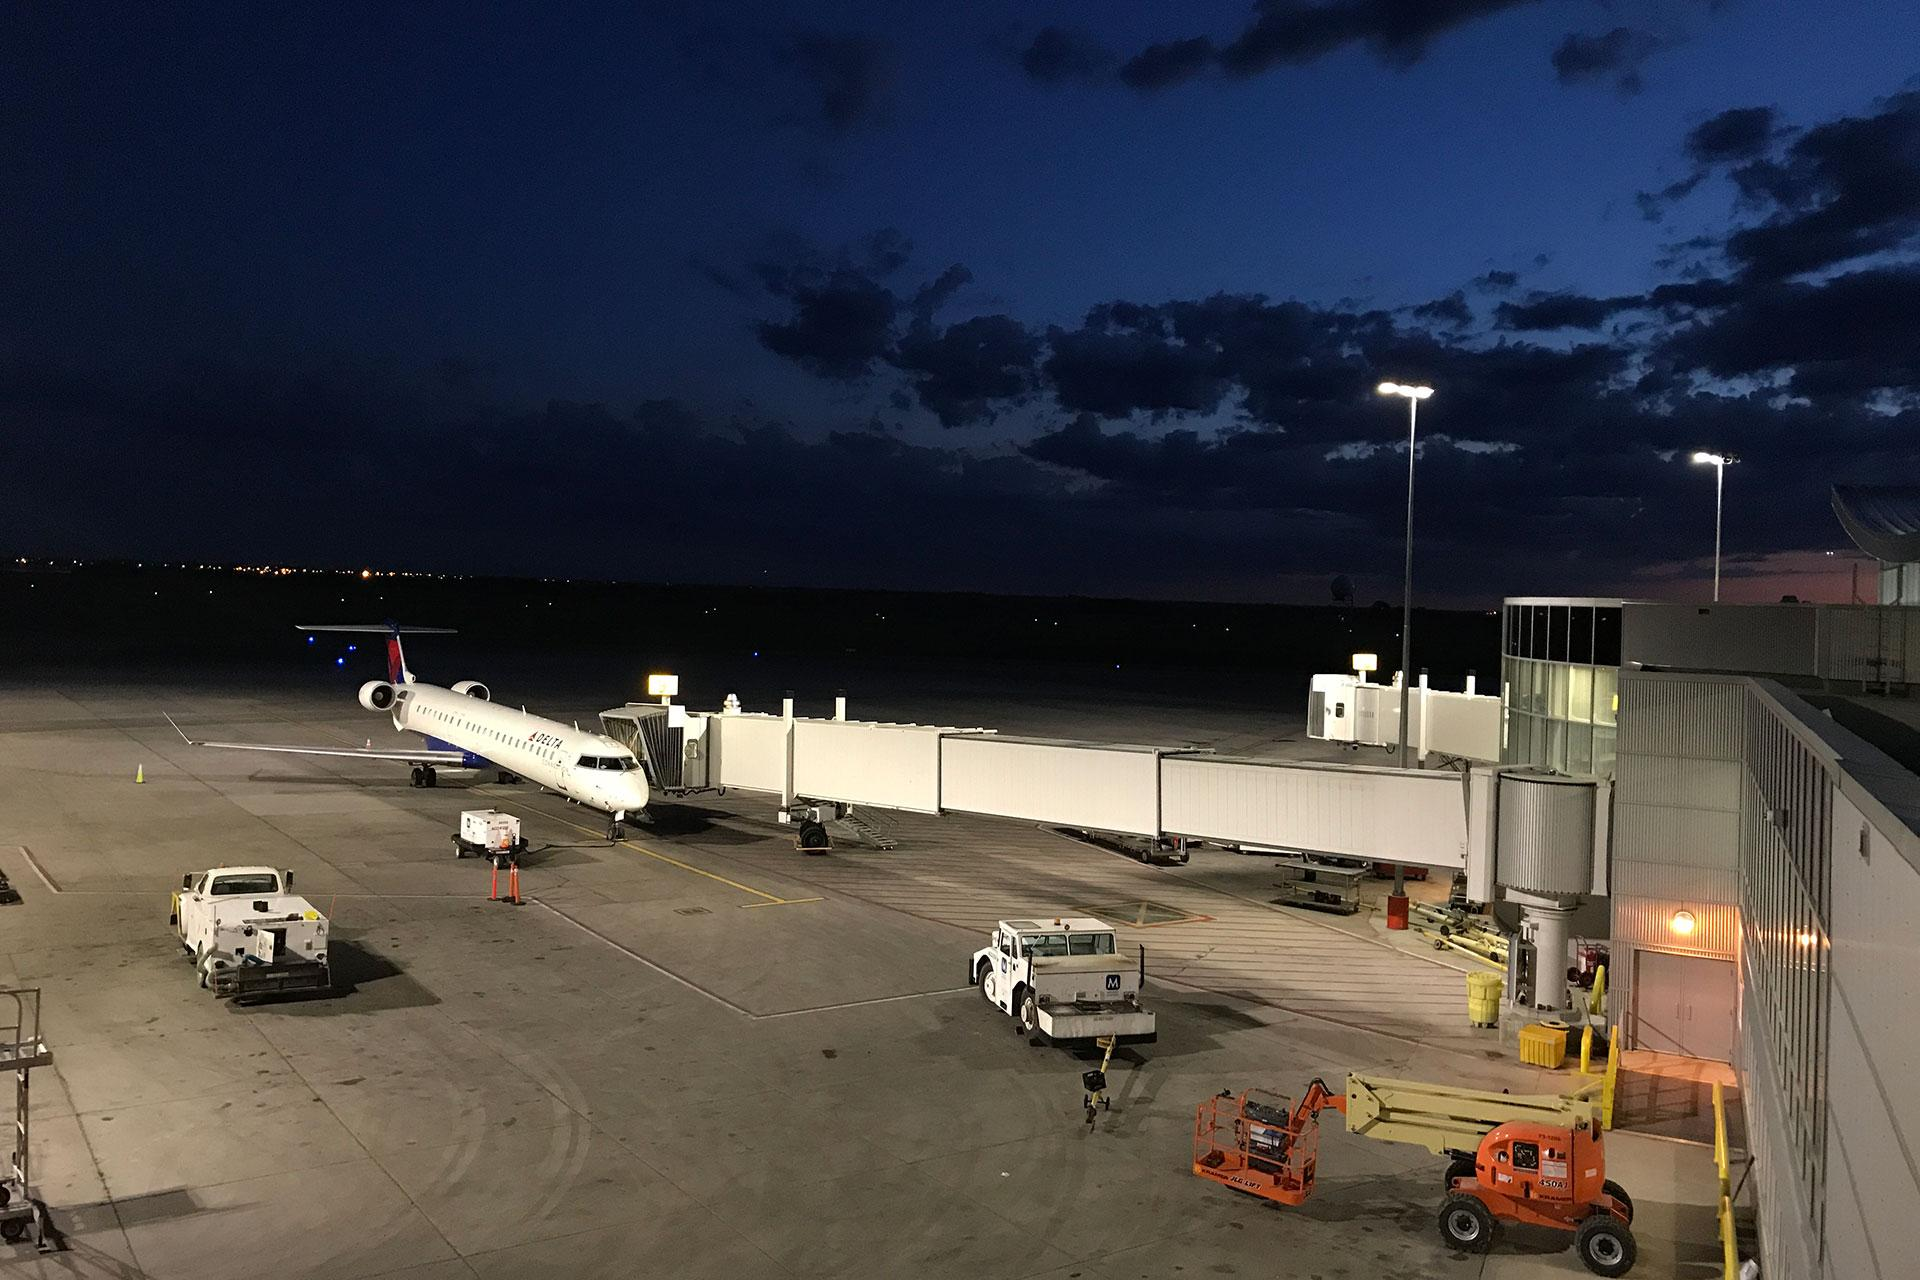 OMNIstar improves the quality of light to enhance safety for all while reducing the operating costs for Saskatoon airport